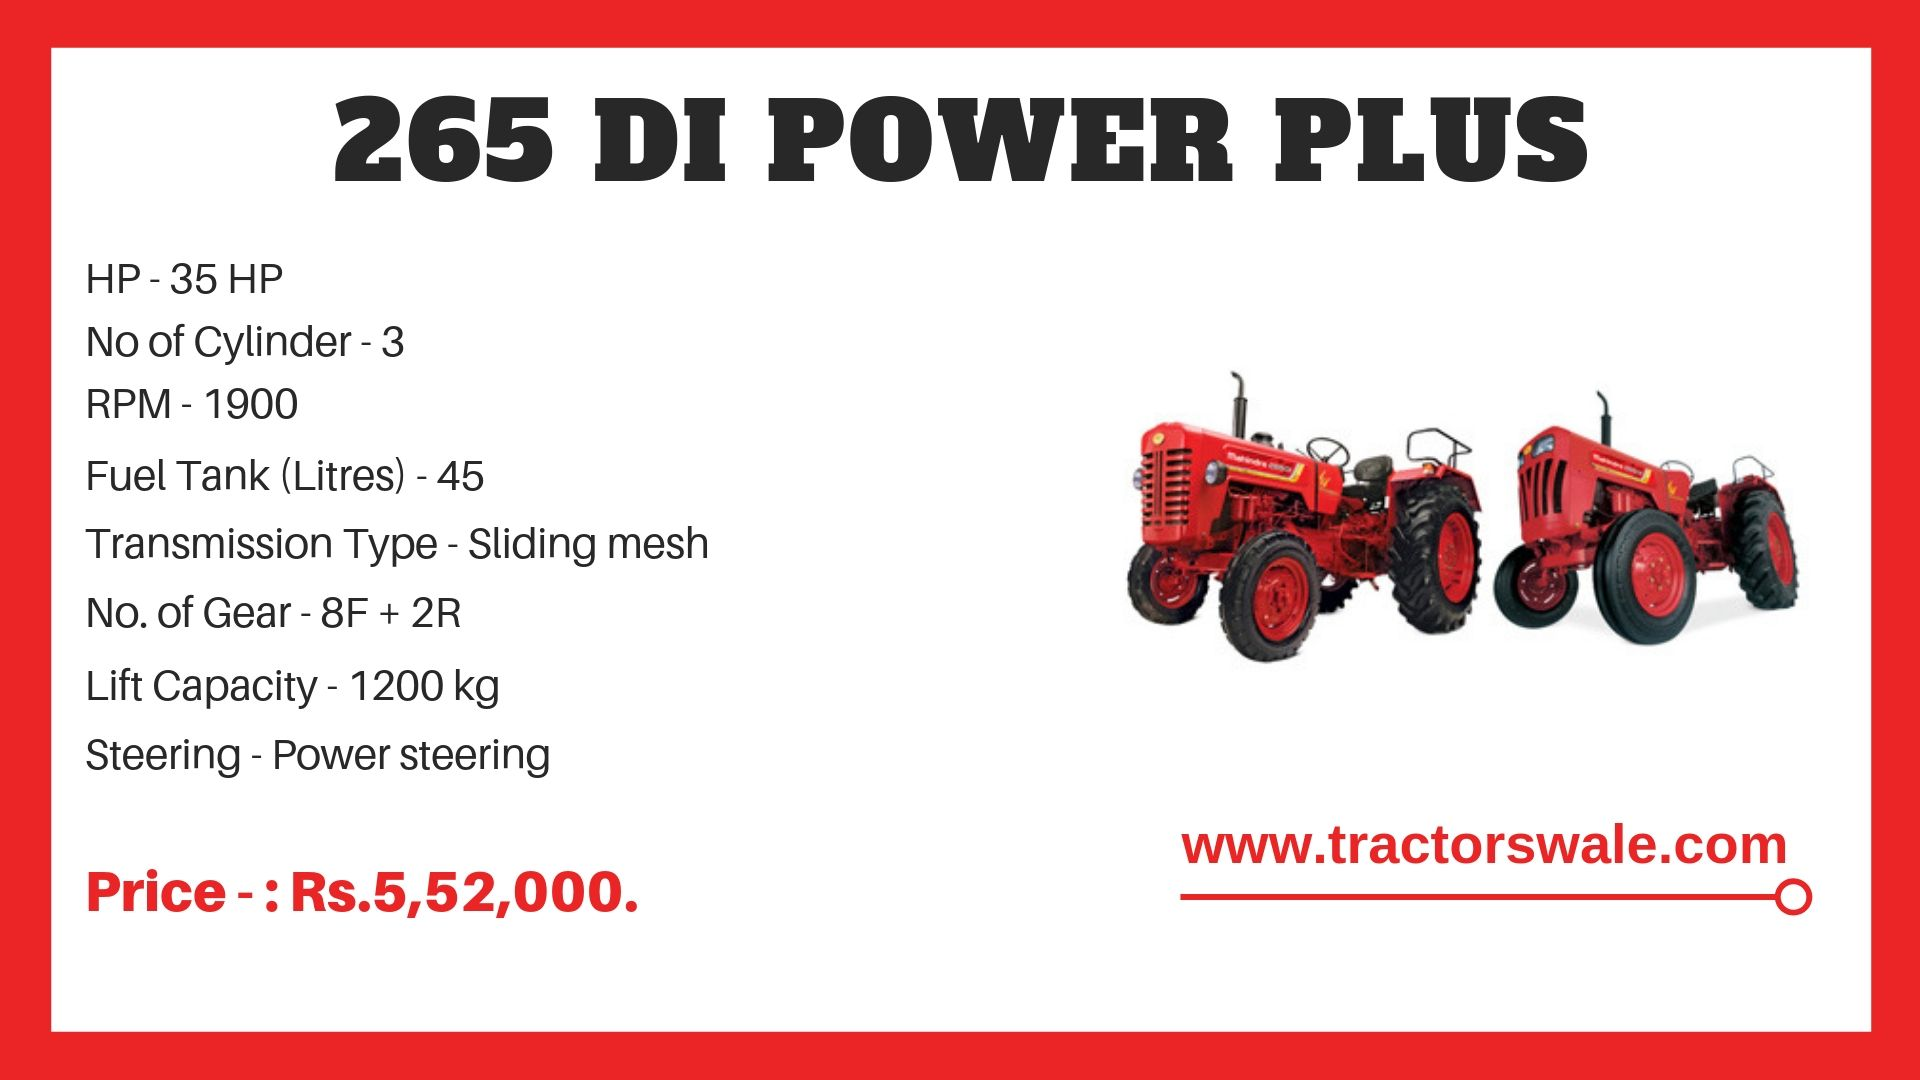 265 DI Power Plus Tractor